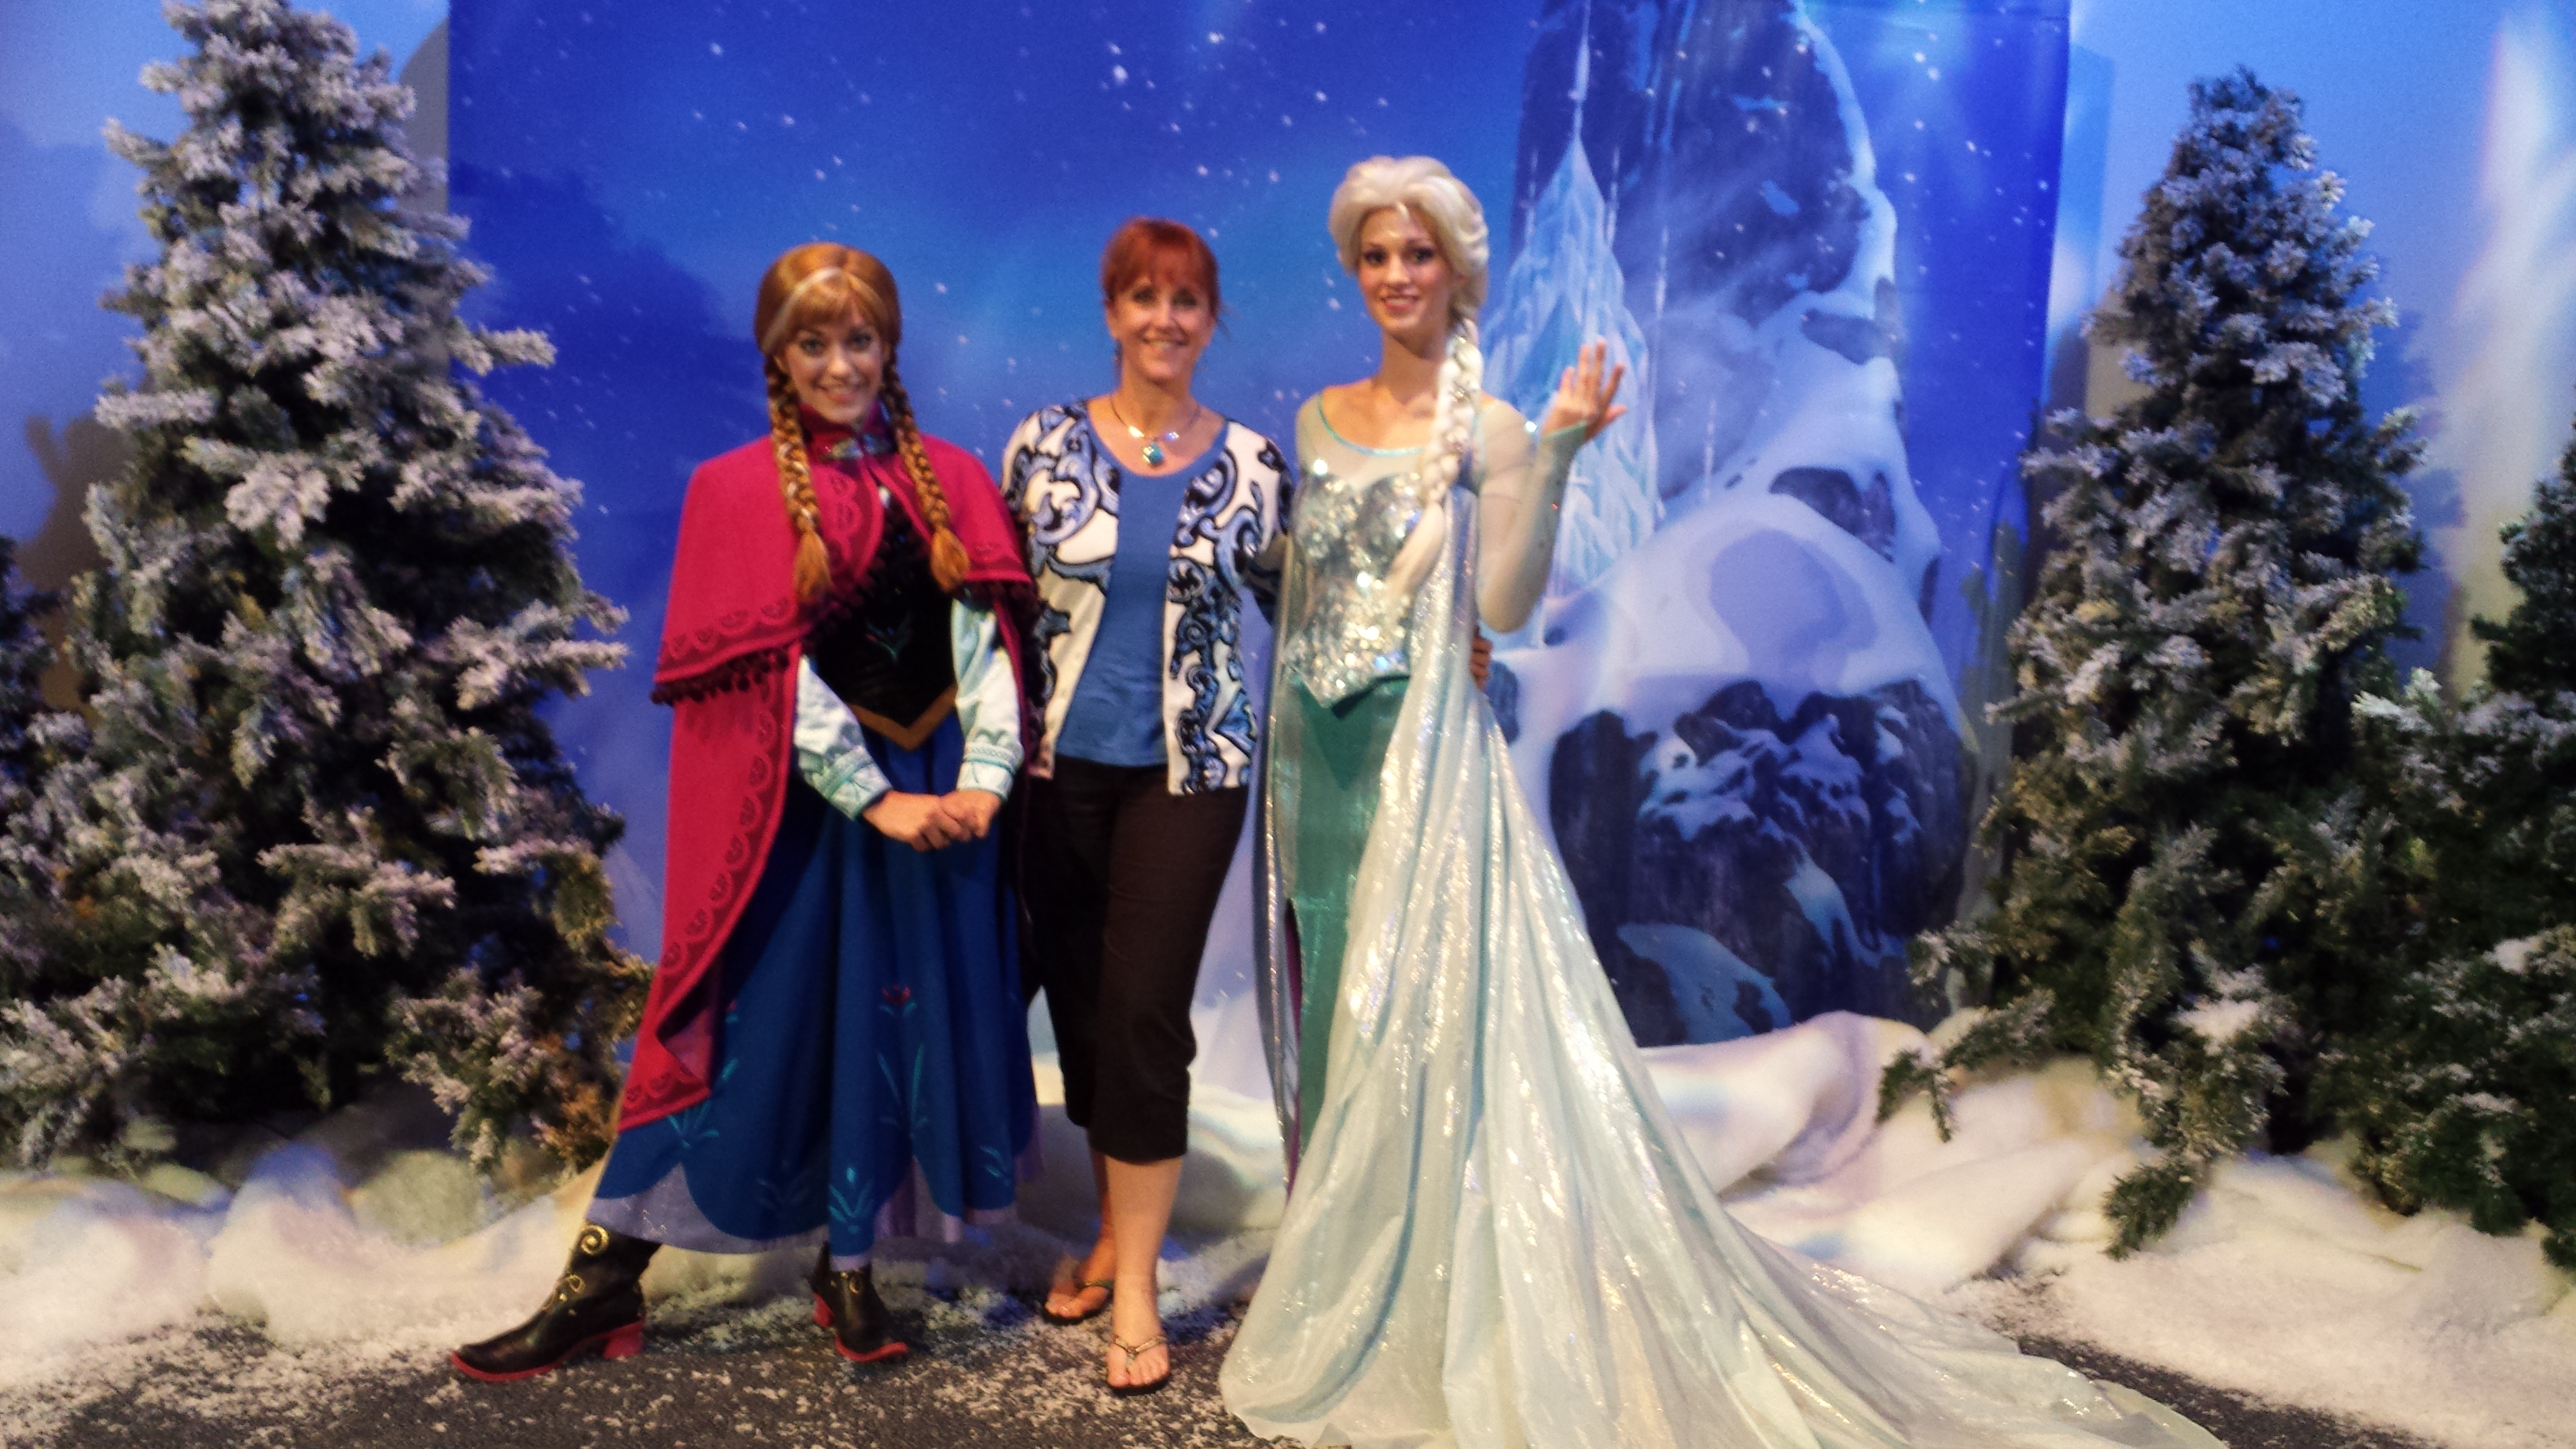 Michelle visits Anna and Elsa